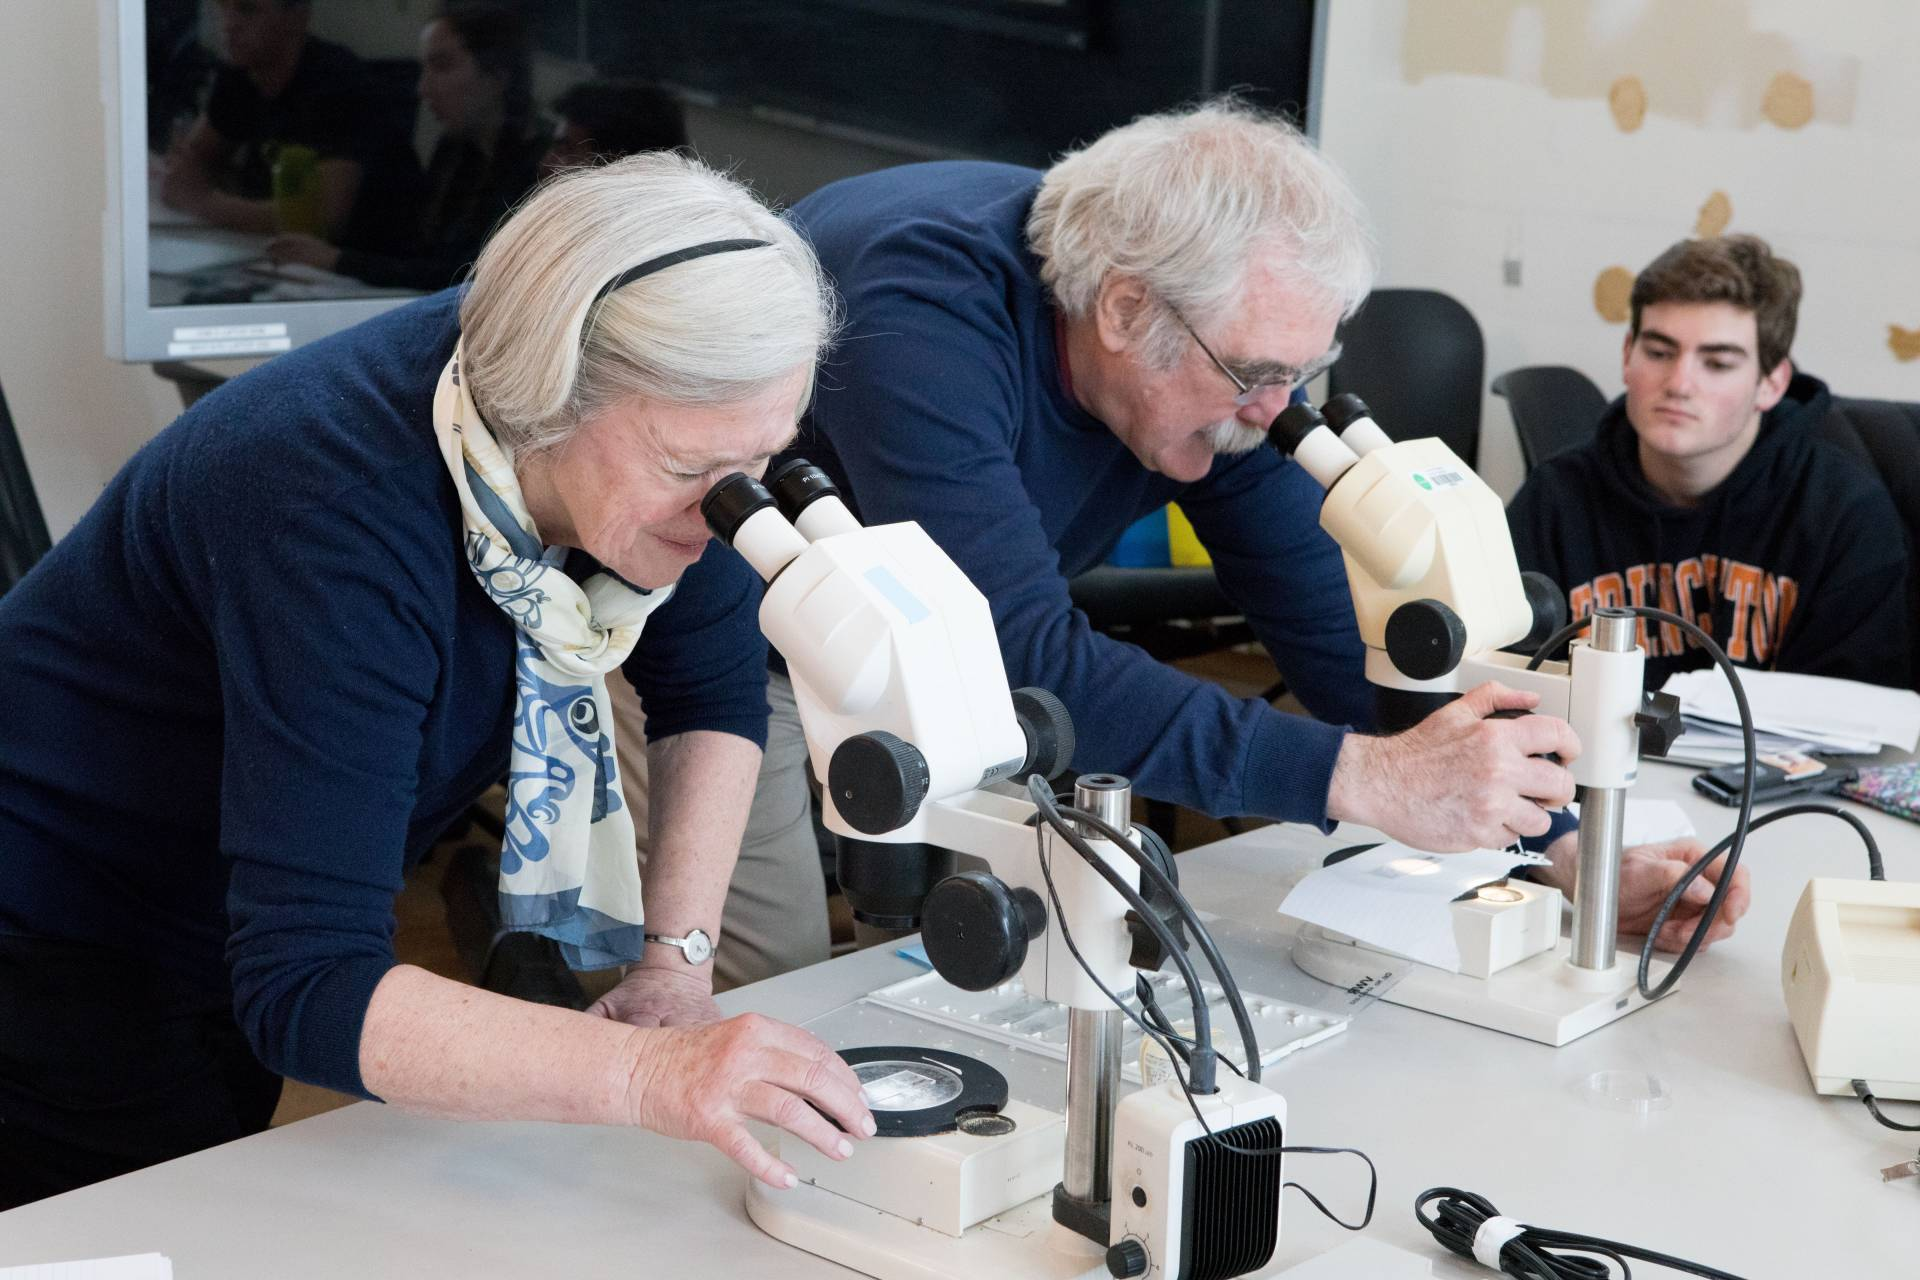 Shirley M. Tilghman and Eric Wieschaus at microscopes